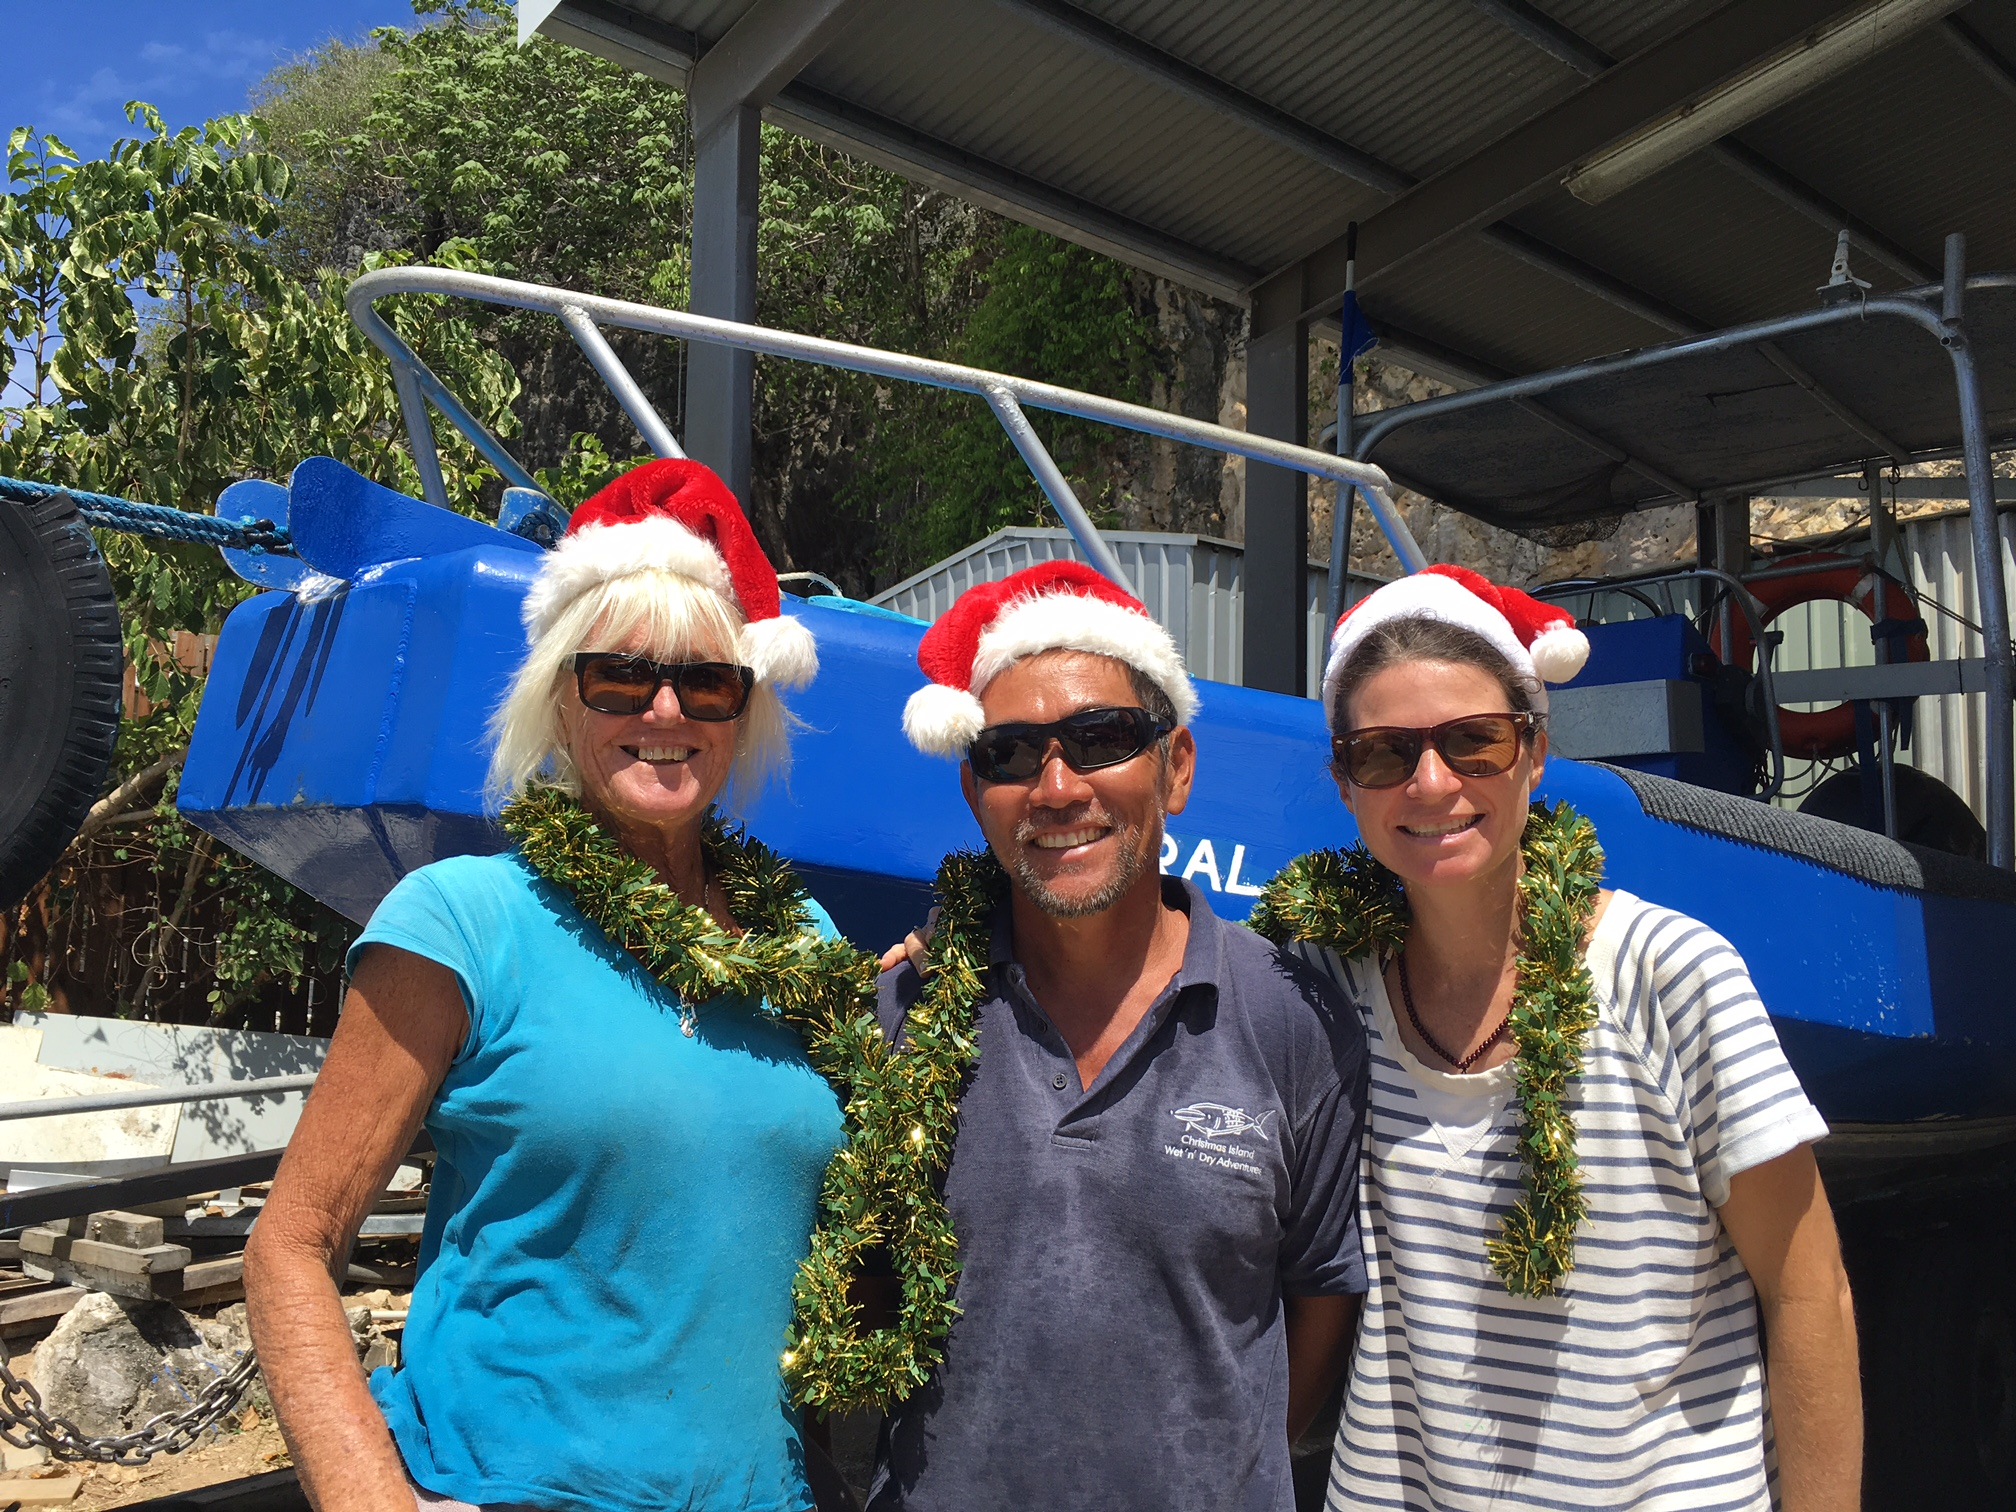 Merry Christmas from the CI Wet'n'Dry Adventures team- never afraid to show their sparkle!